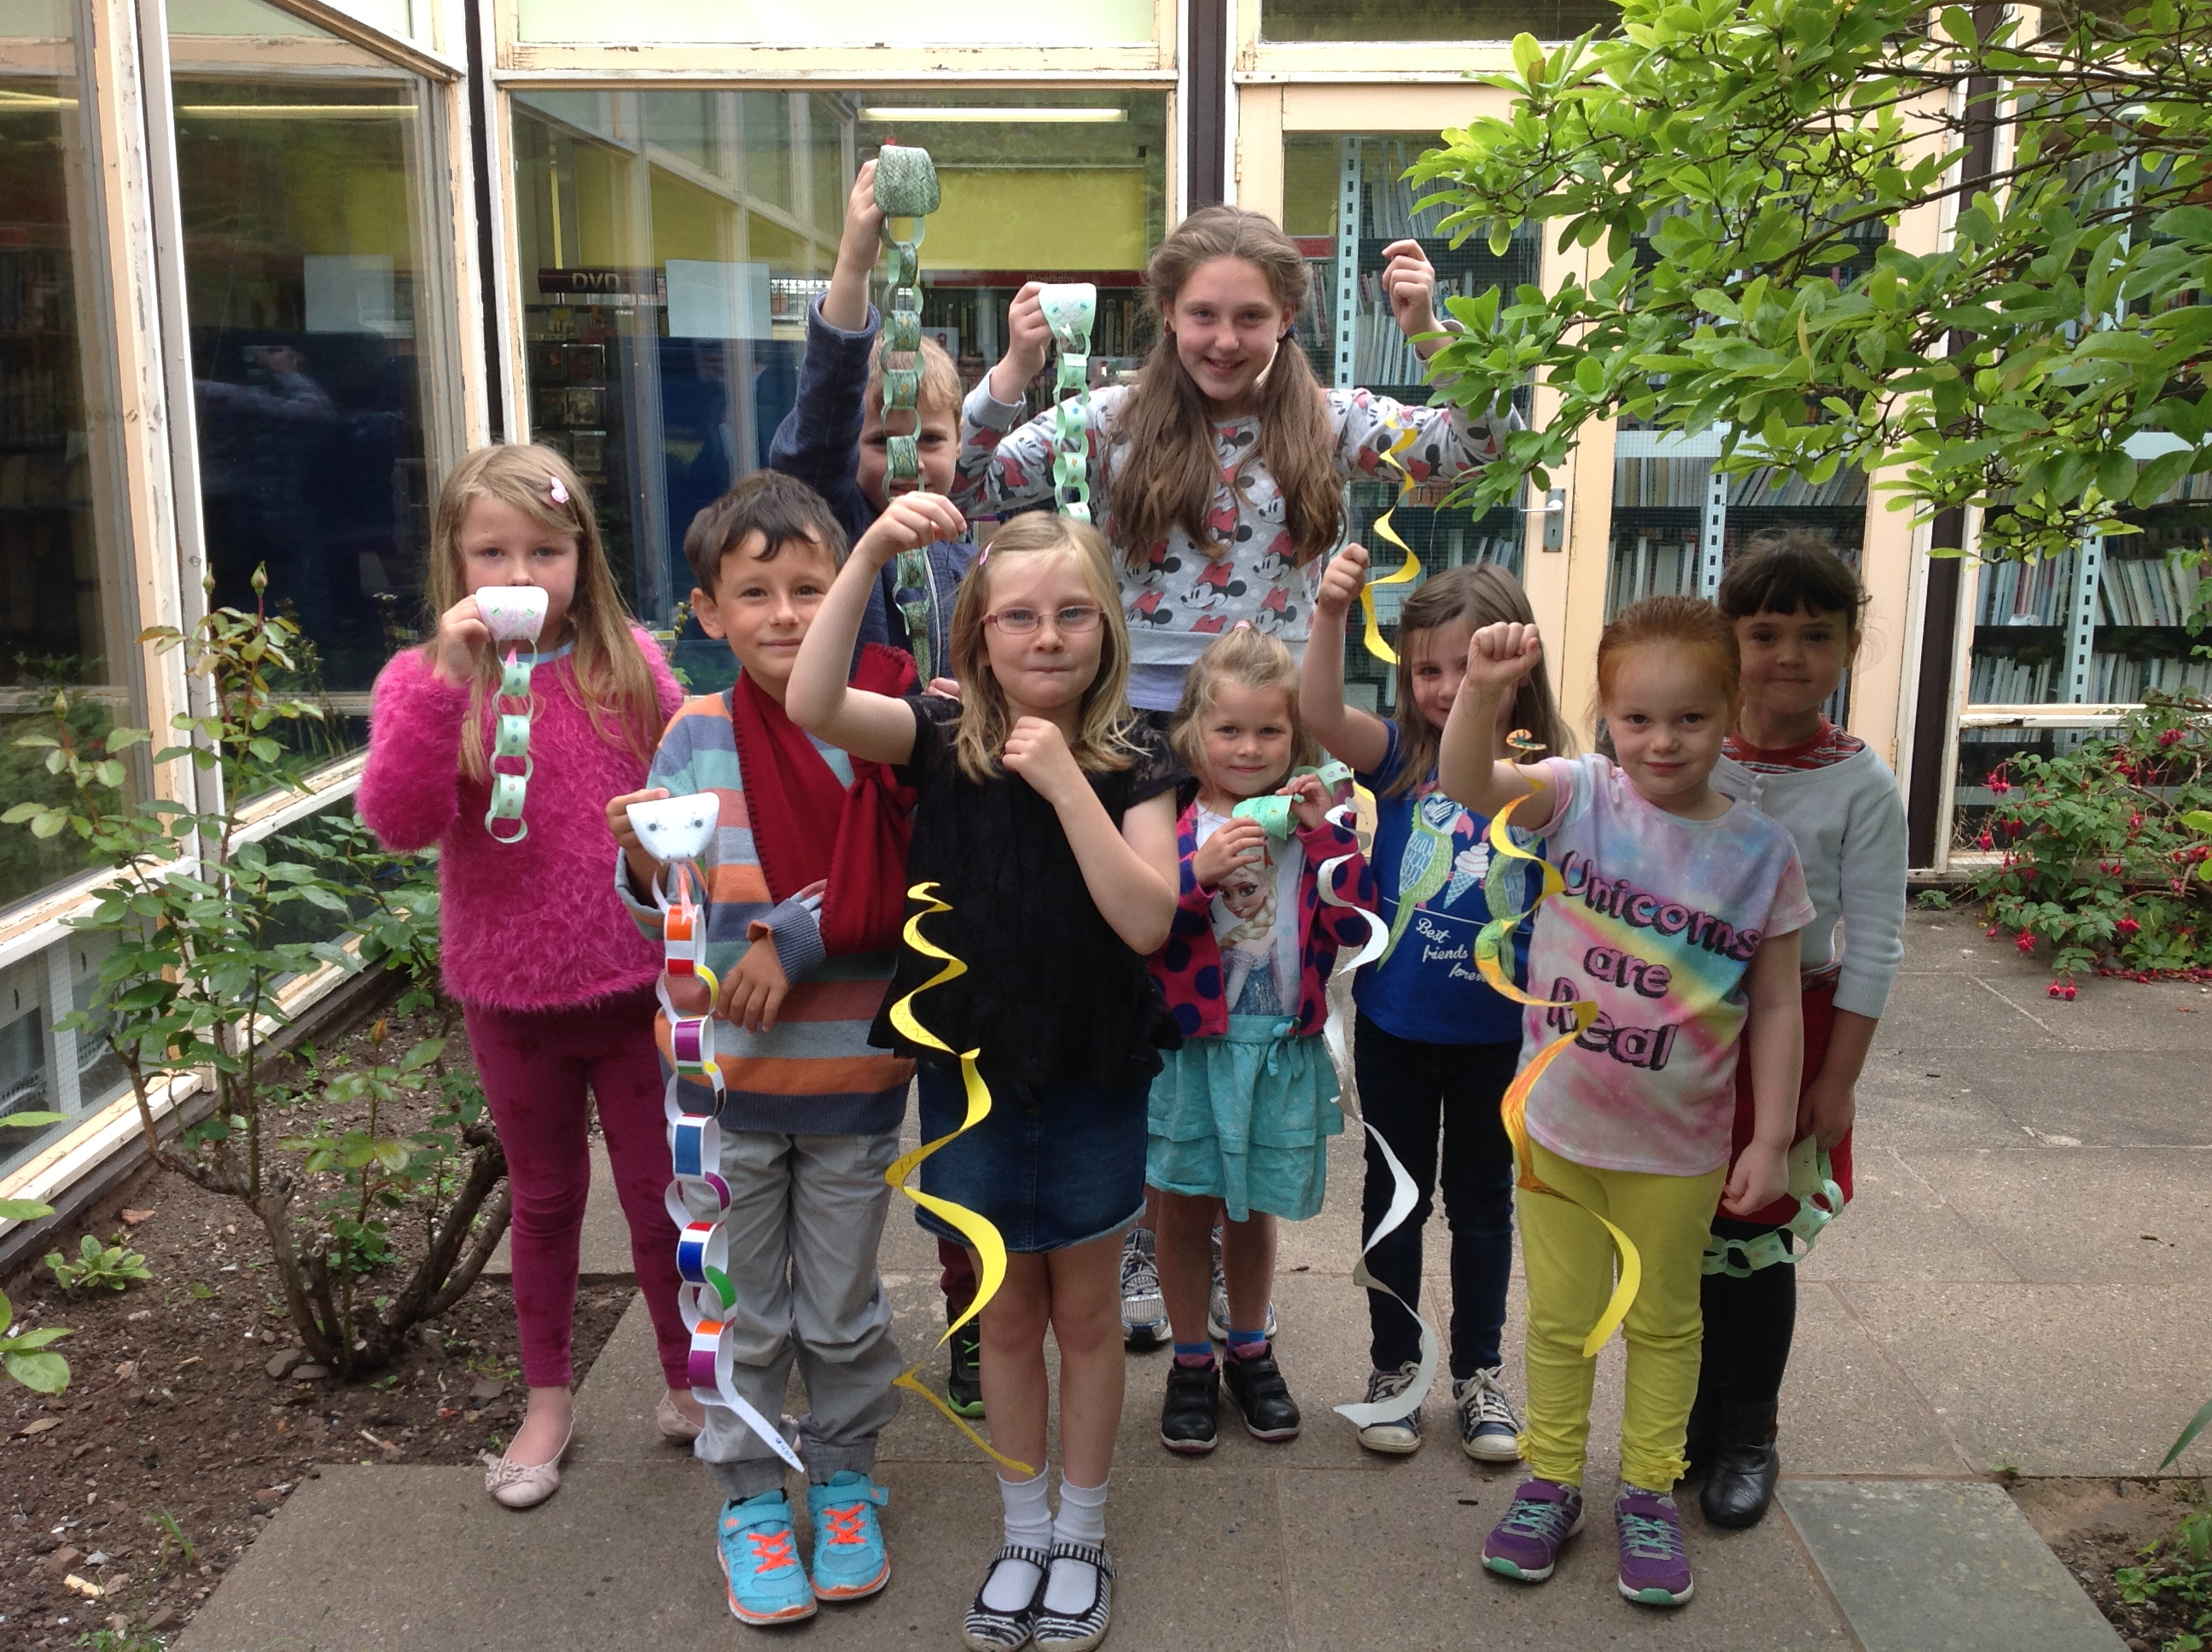 Minehead Library SRC event 1st Aug 2015